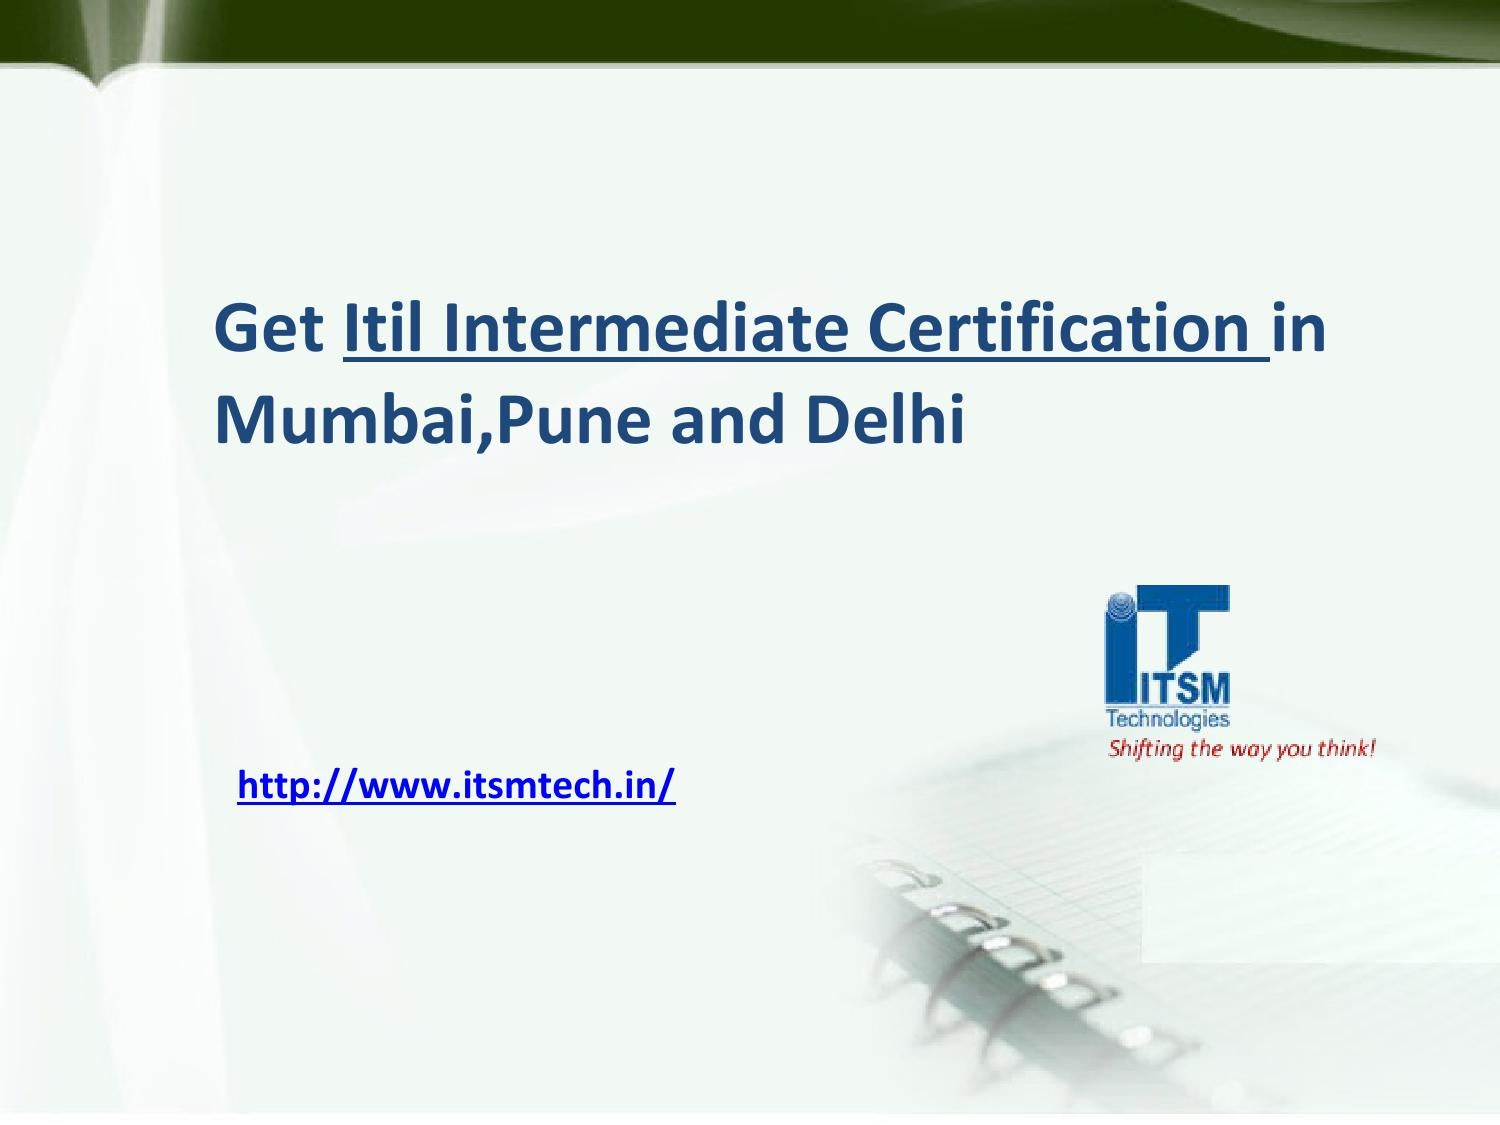 Get itil intermediate certification in mumbaipune and delhi by get itil intermediate certification in mumbaipune and delhi by itsmtech issuu 1betcityfo Gallery